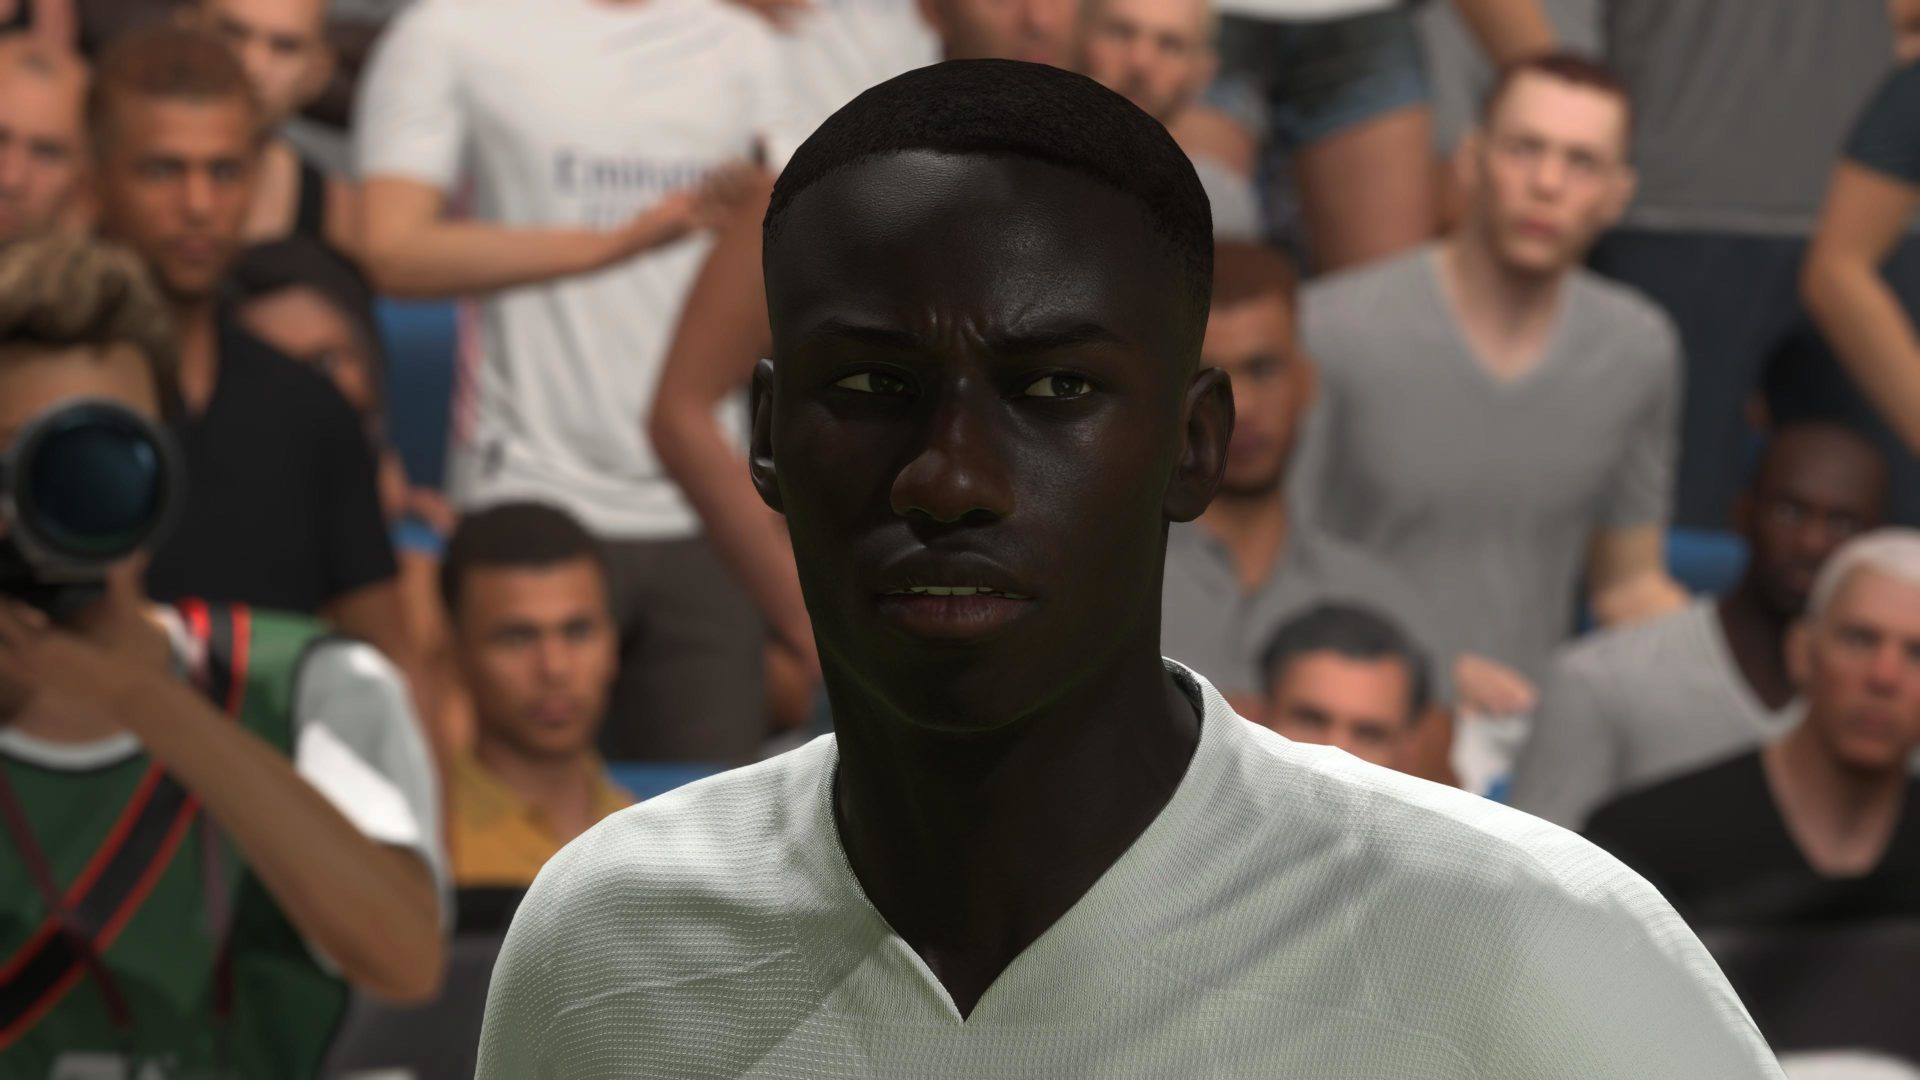 FIFA 21's meta French leftback Ferland Mendy may get an upgrade this week.